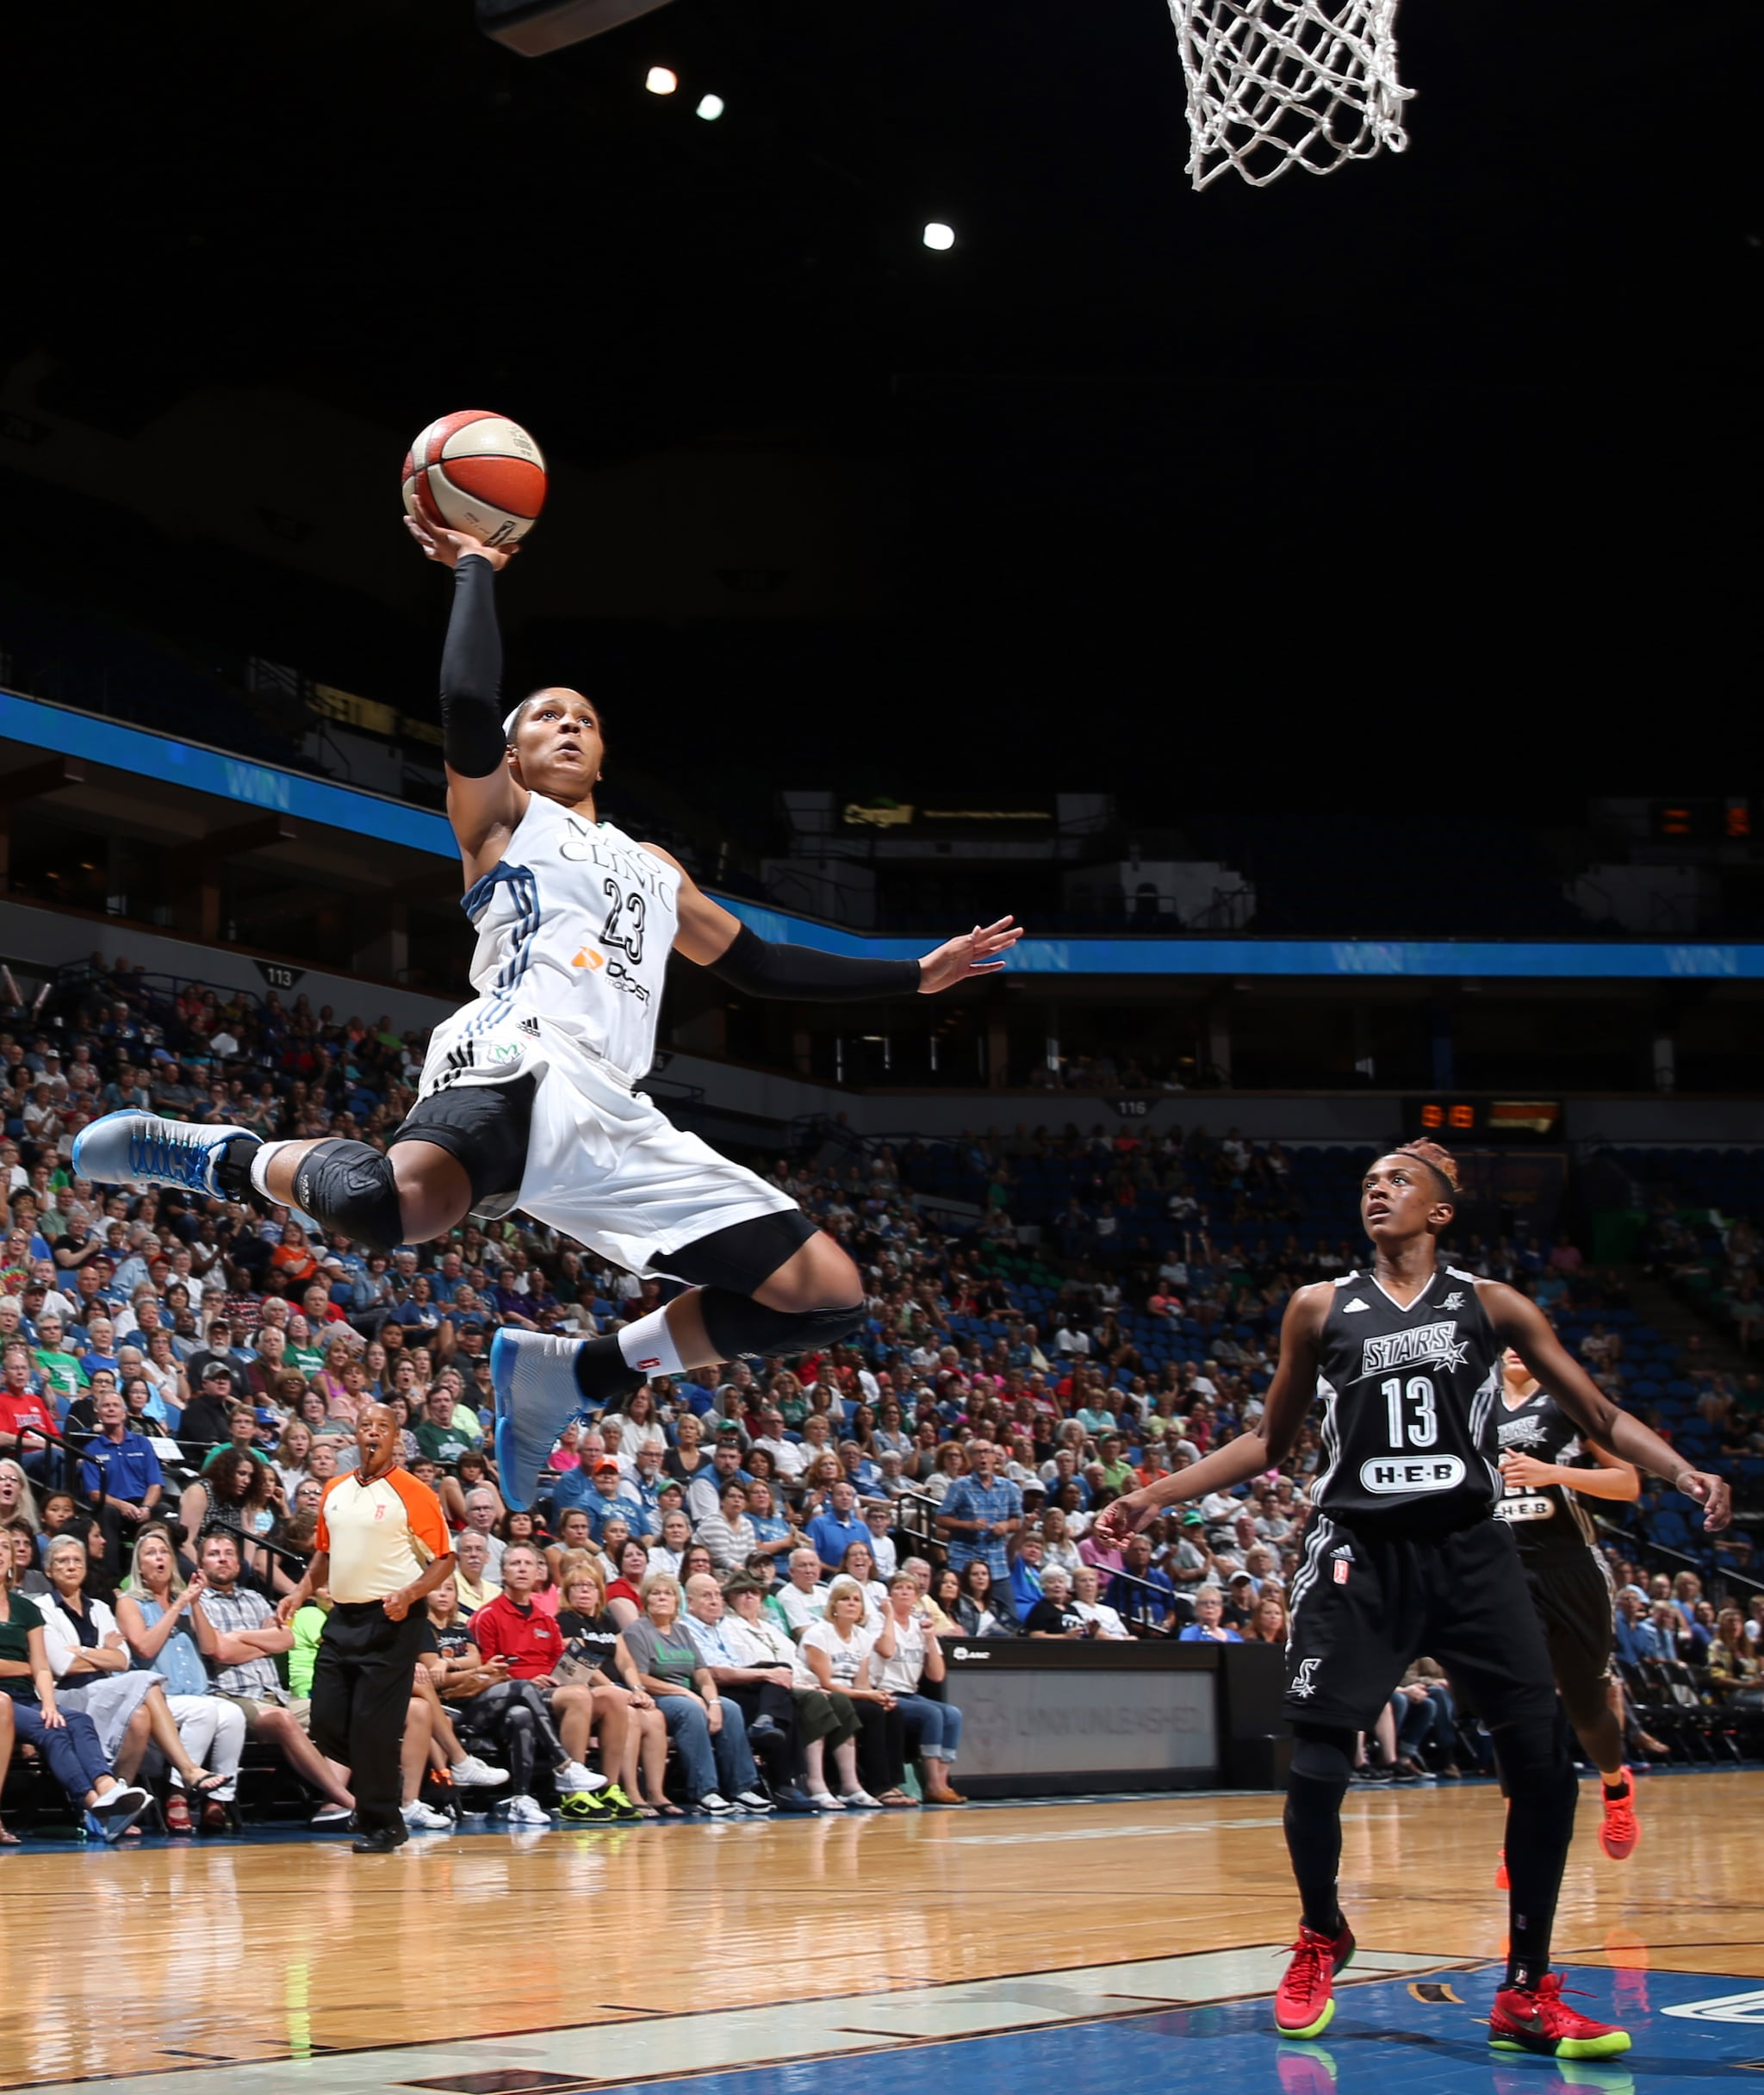 It is only right to lead-off with a truly spectacular picture. Lynx forward Maya Moore dropped home the alley-oop after a great setup from guard Lindsay Whalen. Moore finished with 32 points, nine rebounds, four assists and three steals to lead her team to a win and a playoff berth.